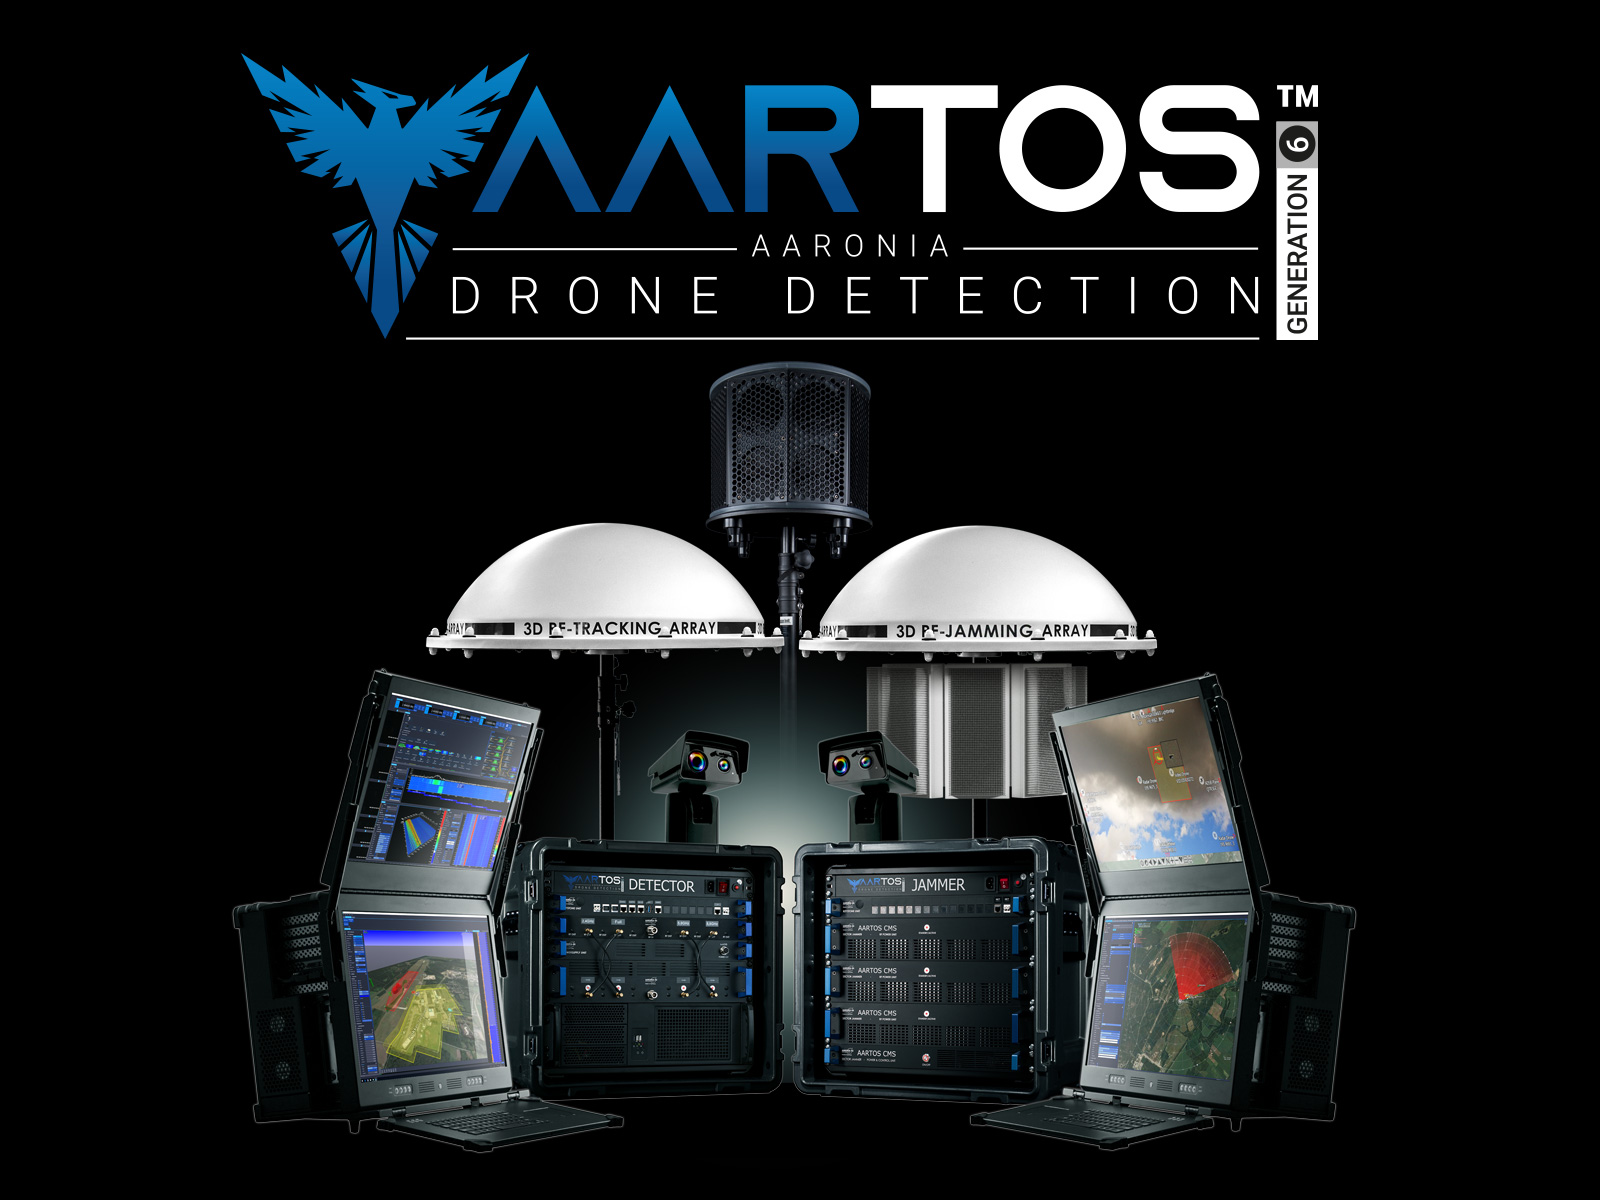 The AARTOS Drone Detection System